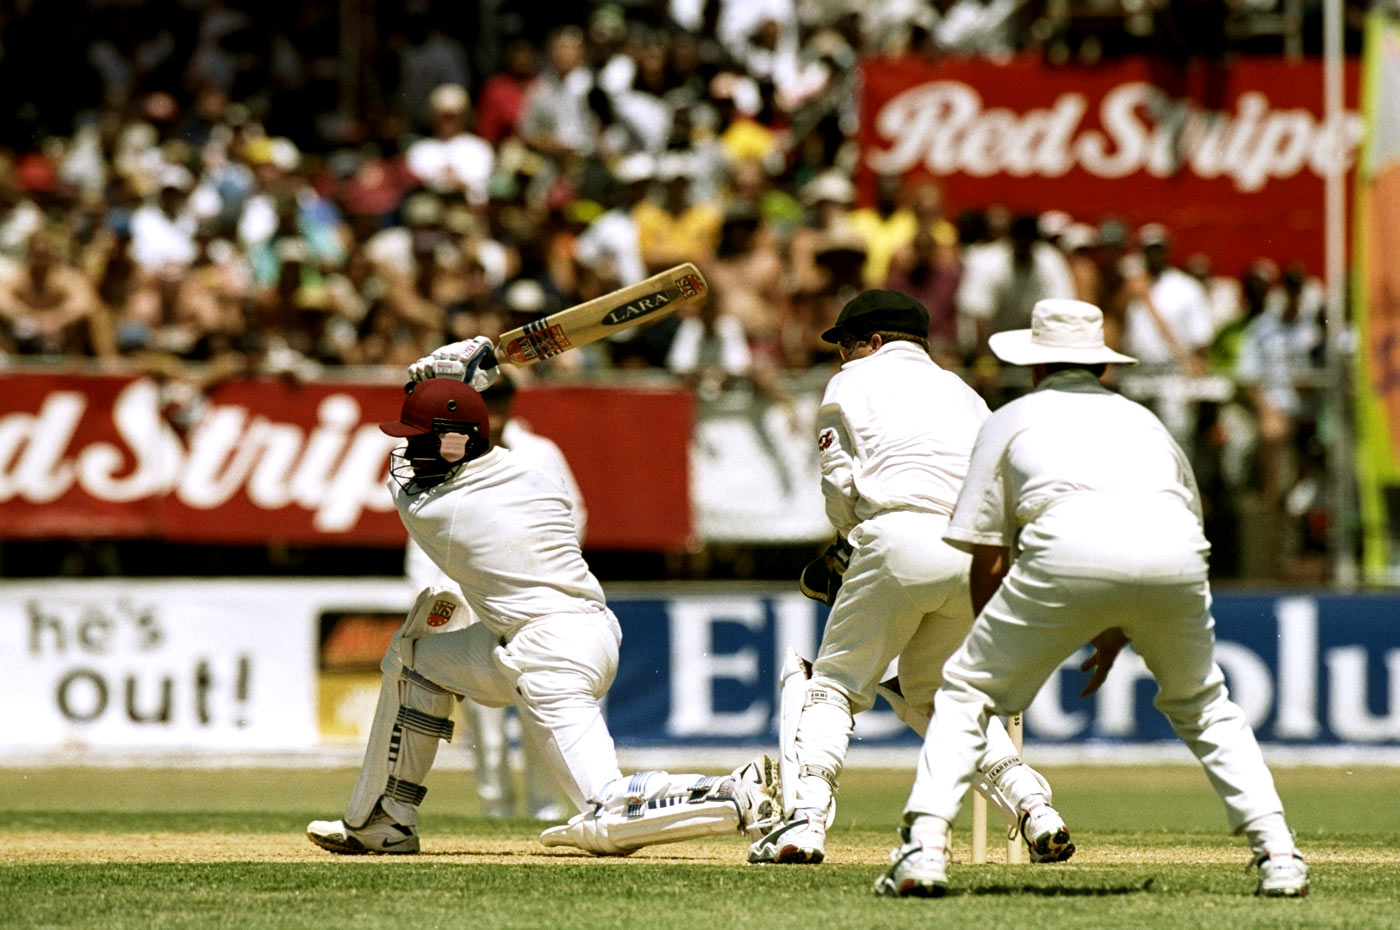 test match sabina park The west indies' tactics in this (sabina park) test were not part of the game   two of the three remaining series matches came to be played at port of spain.